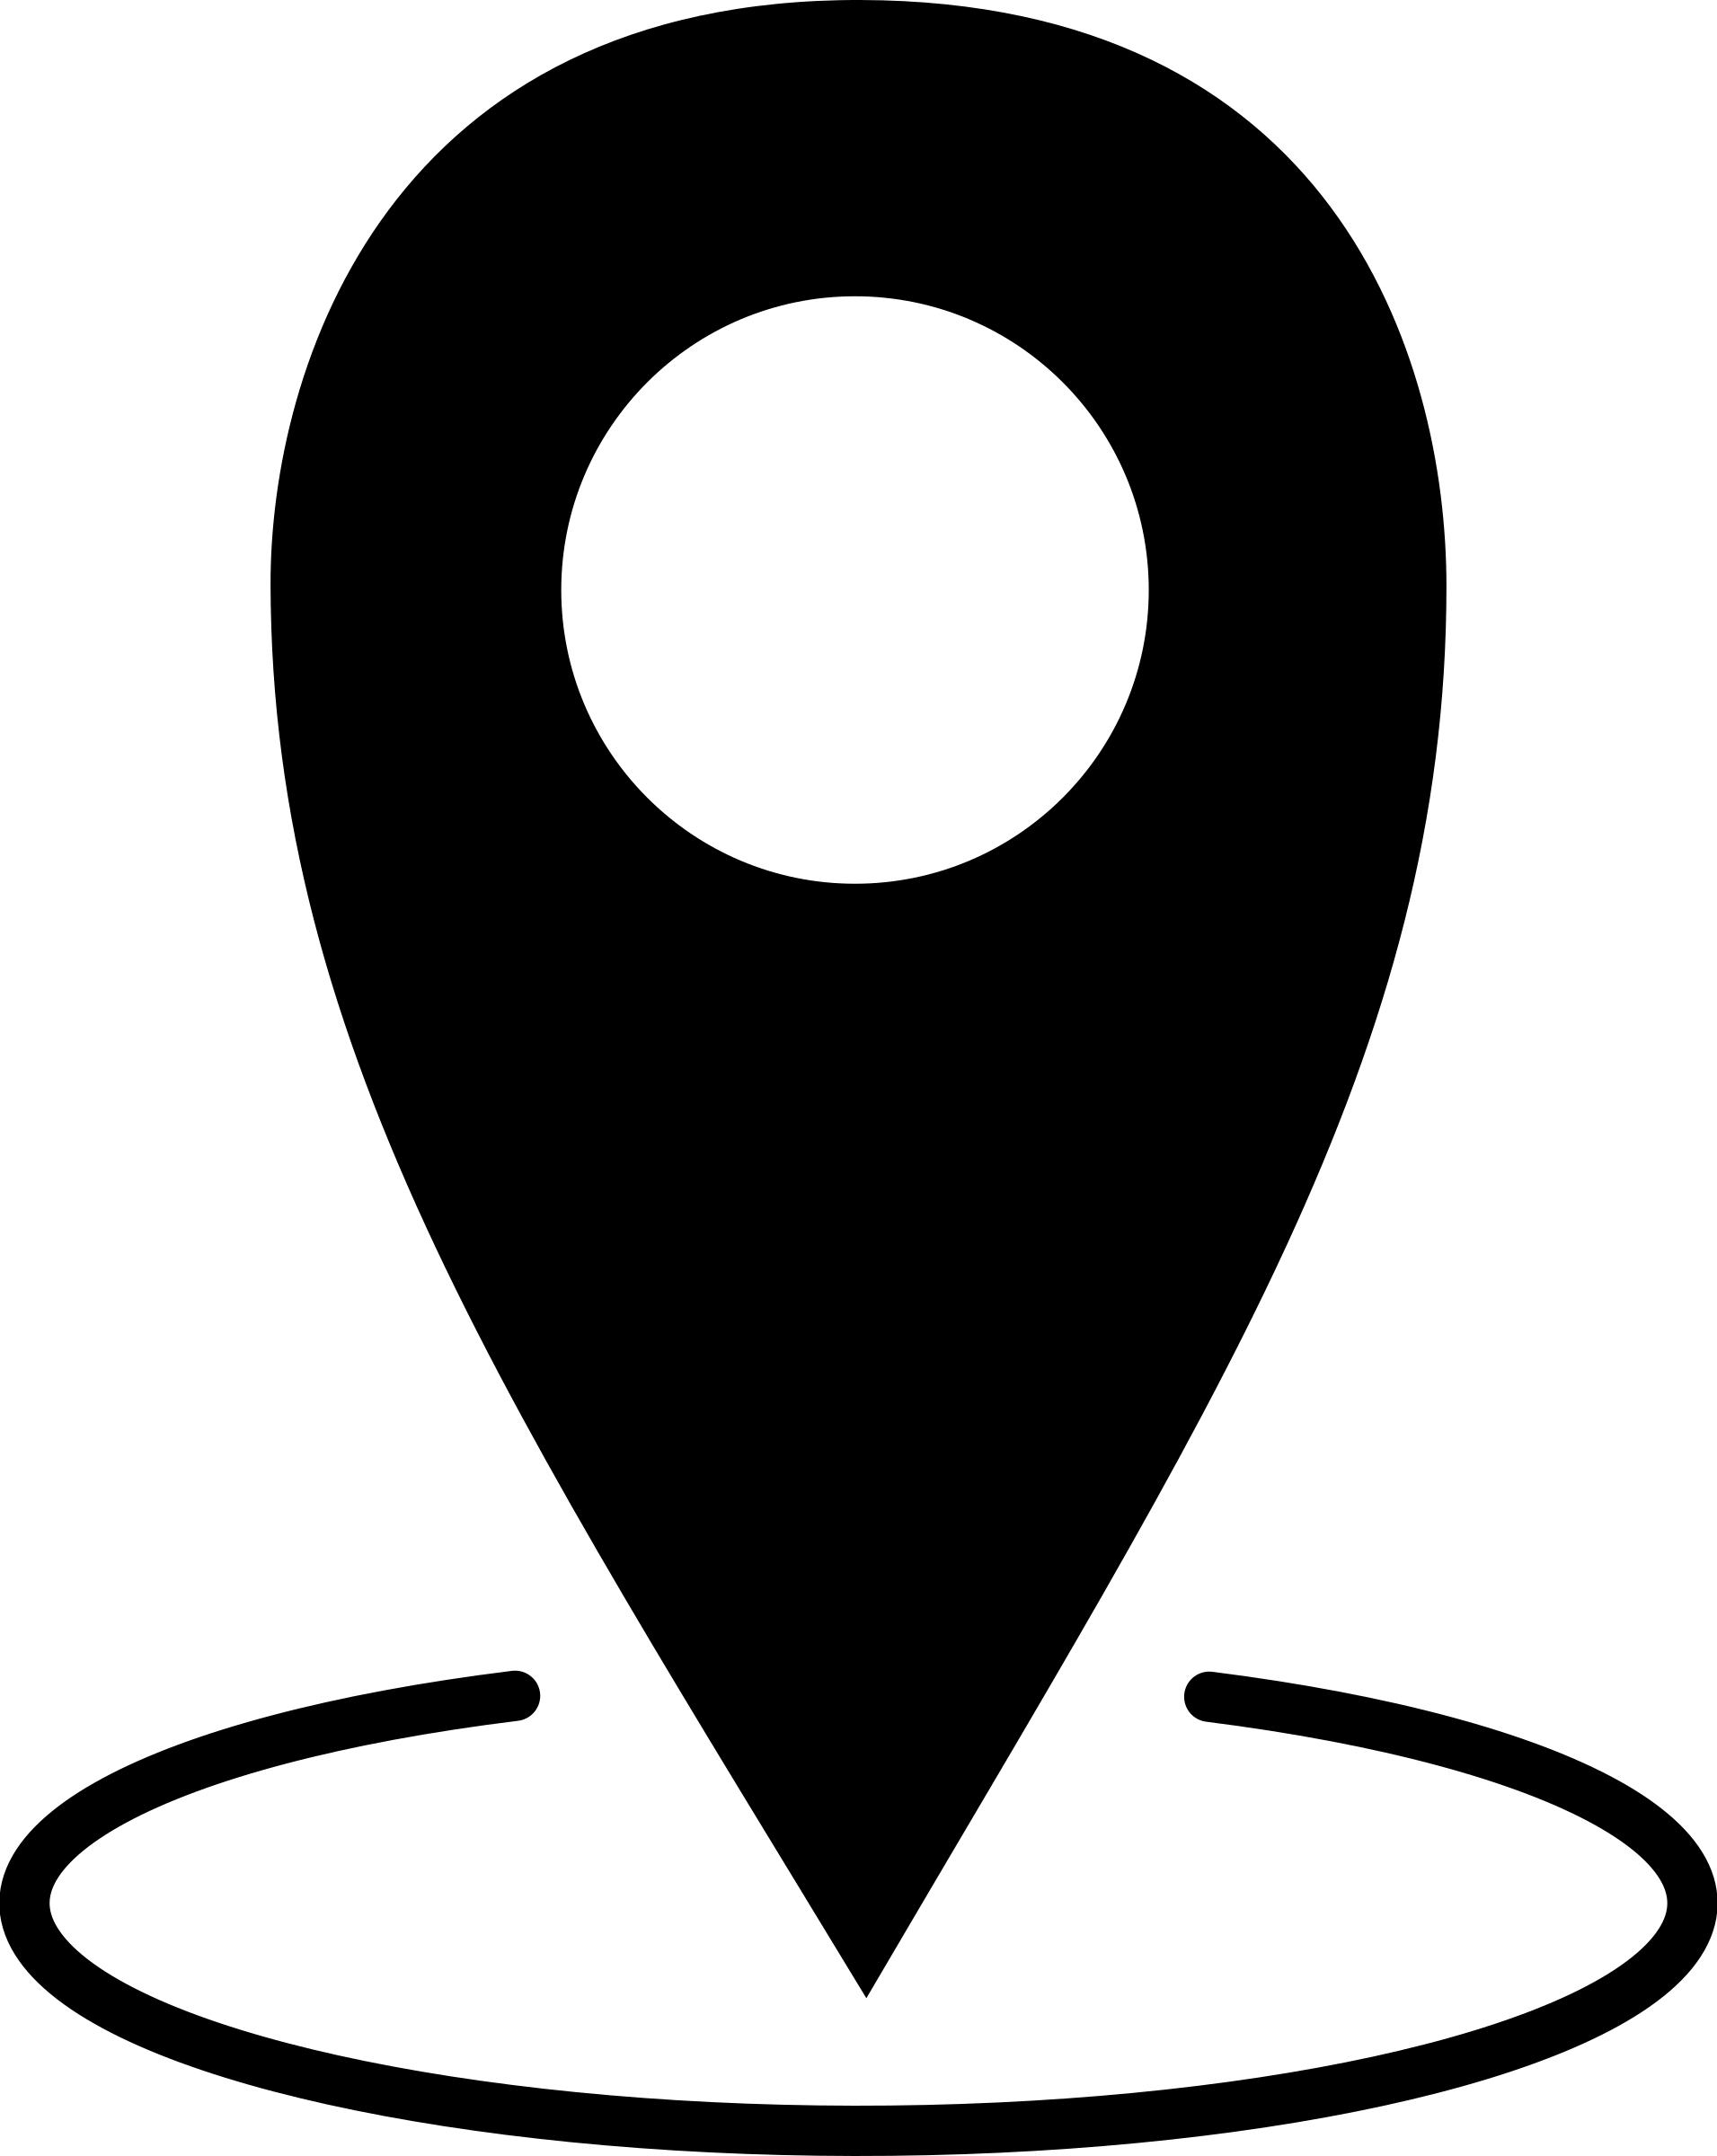 gps icon png  u0026 free gps icon png transparent images  2304